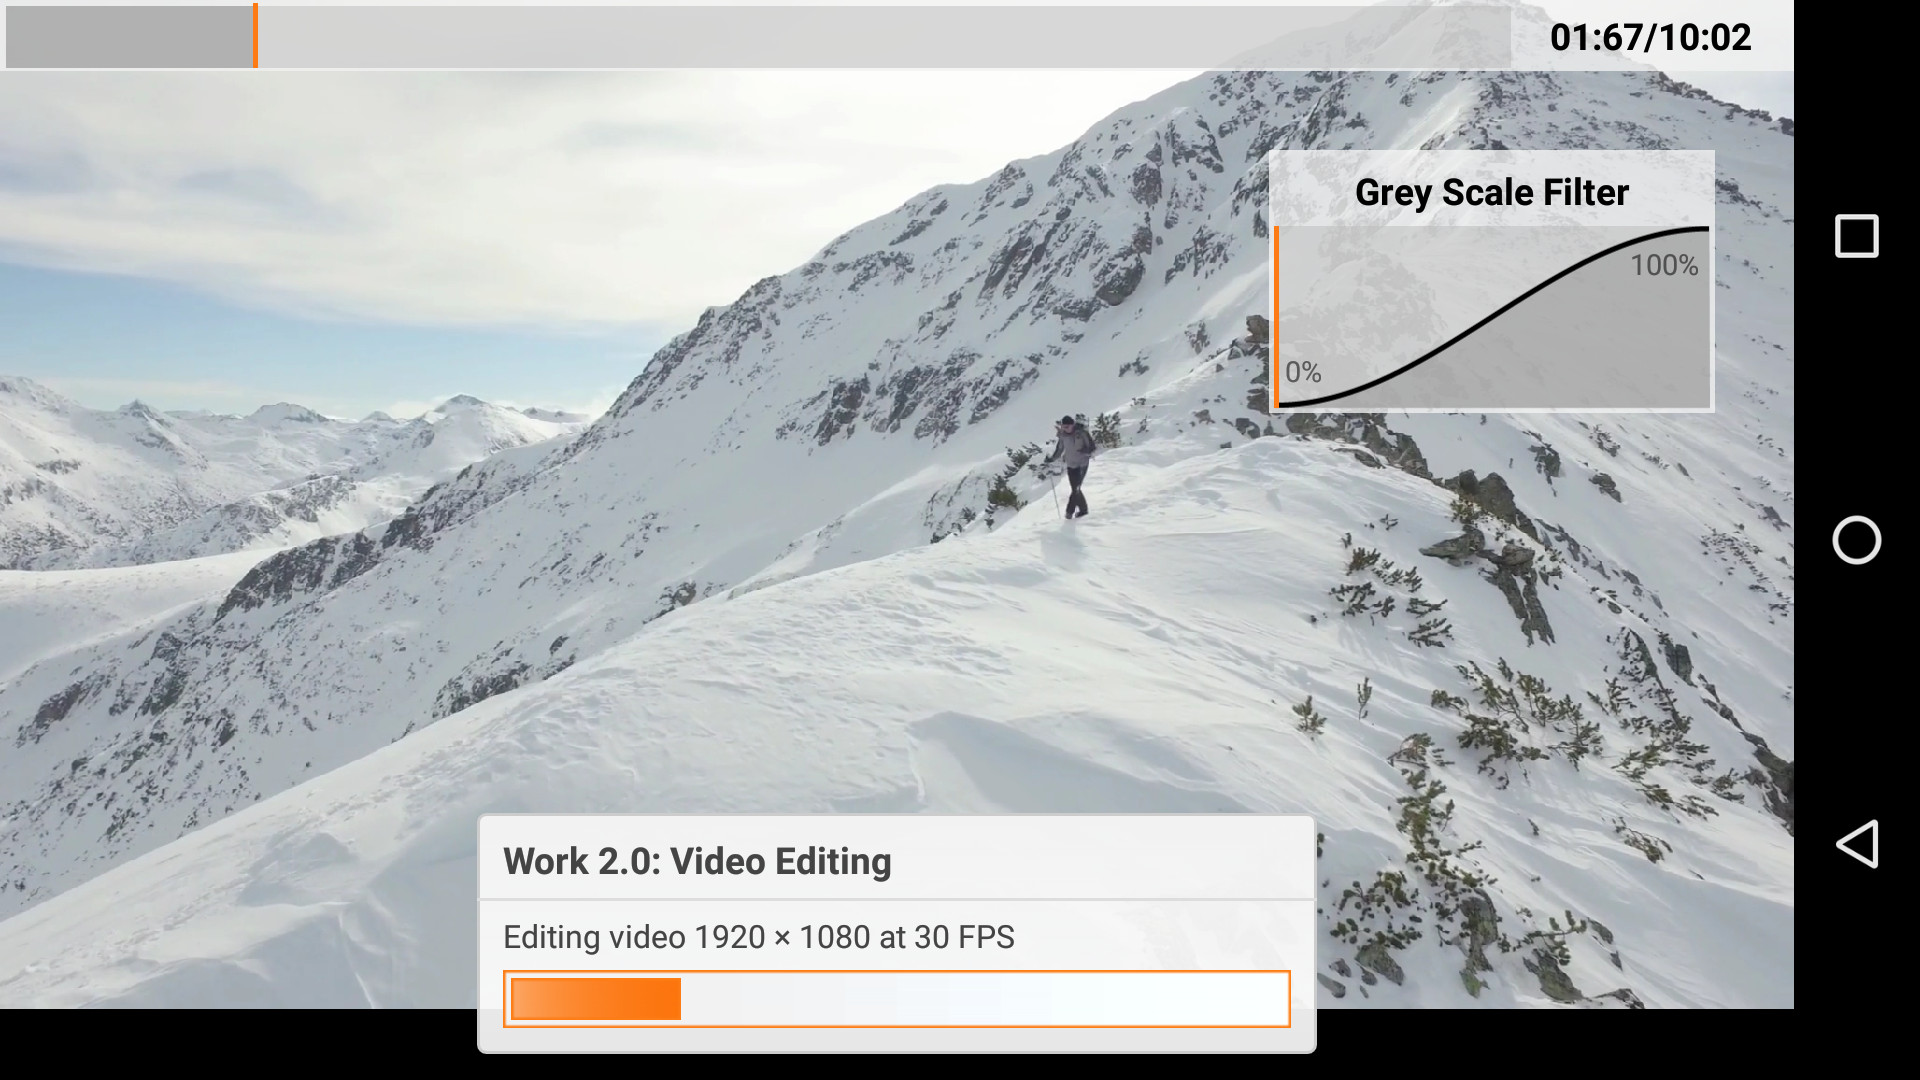 PCMark for Android Work 2.0 Video Editing test